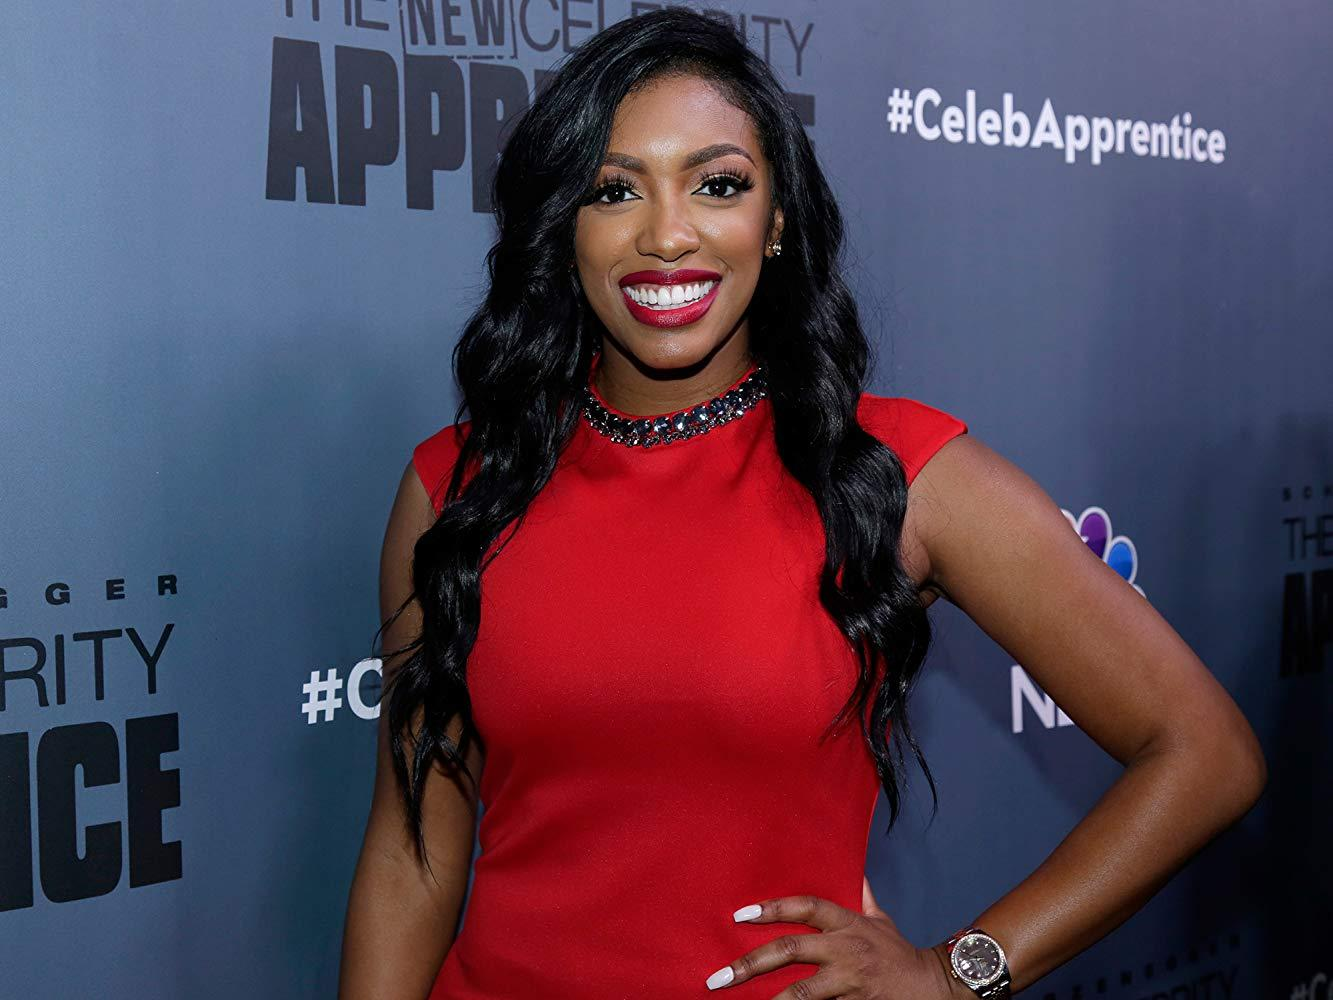 Porsha Williams Looks Angelic In All-White While Snuggling Baby Pilar - Check Out The Pics!